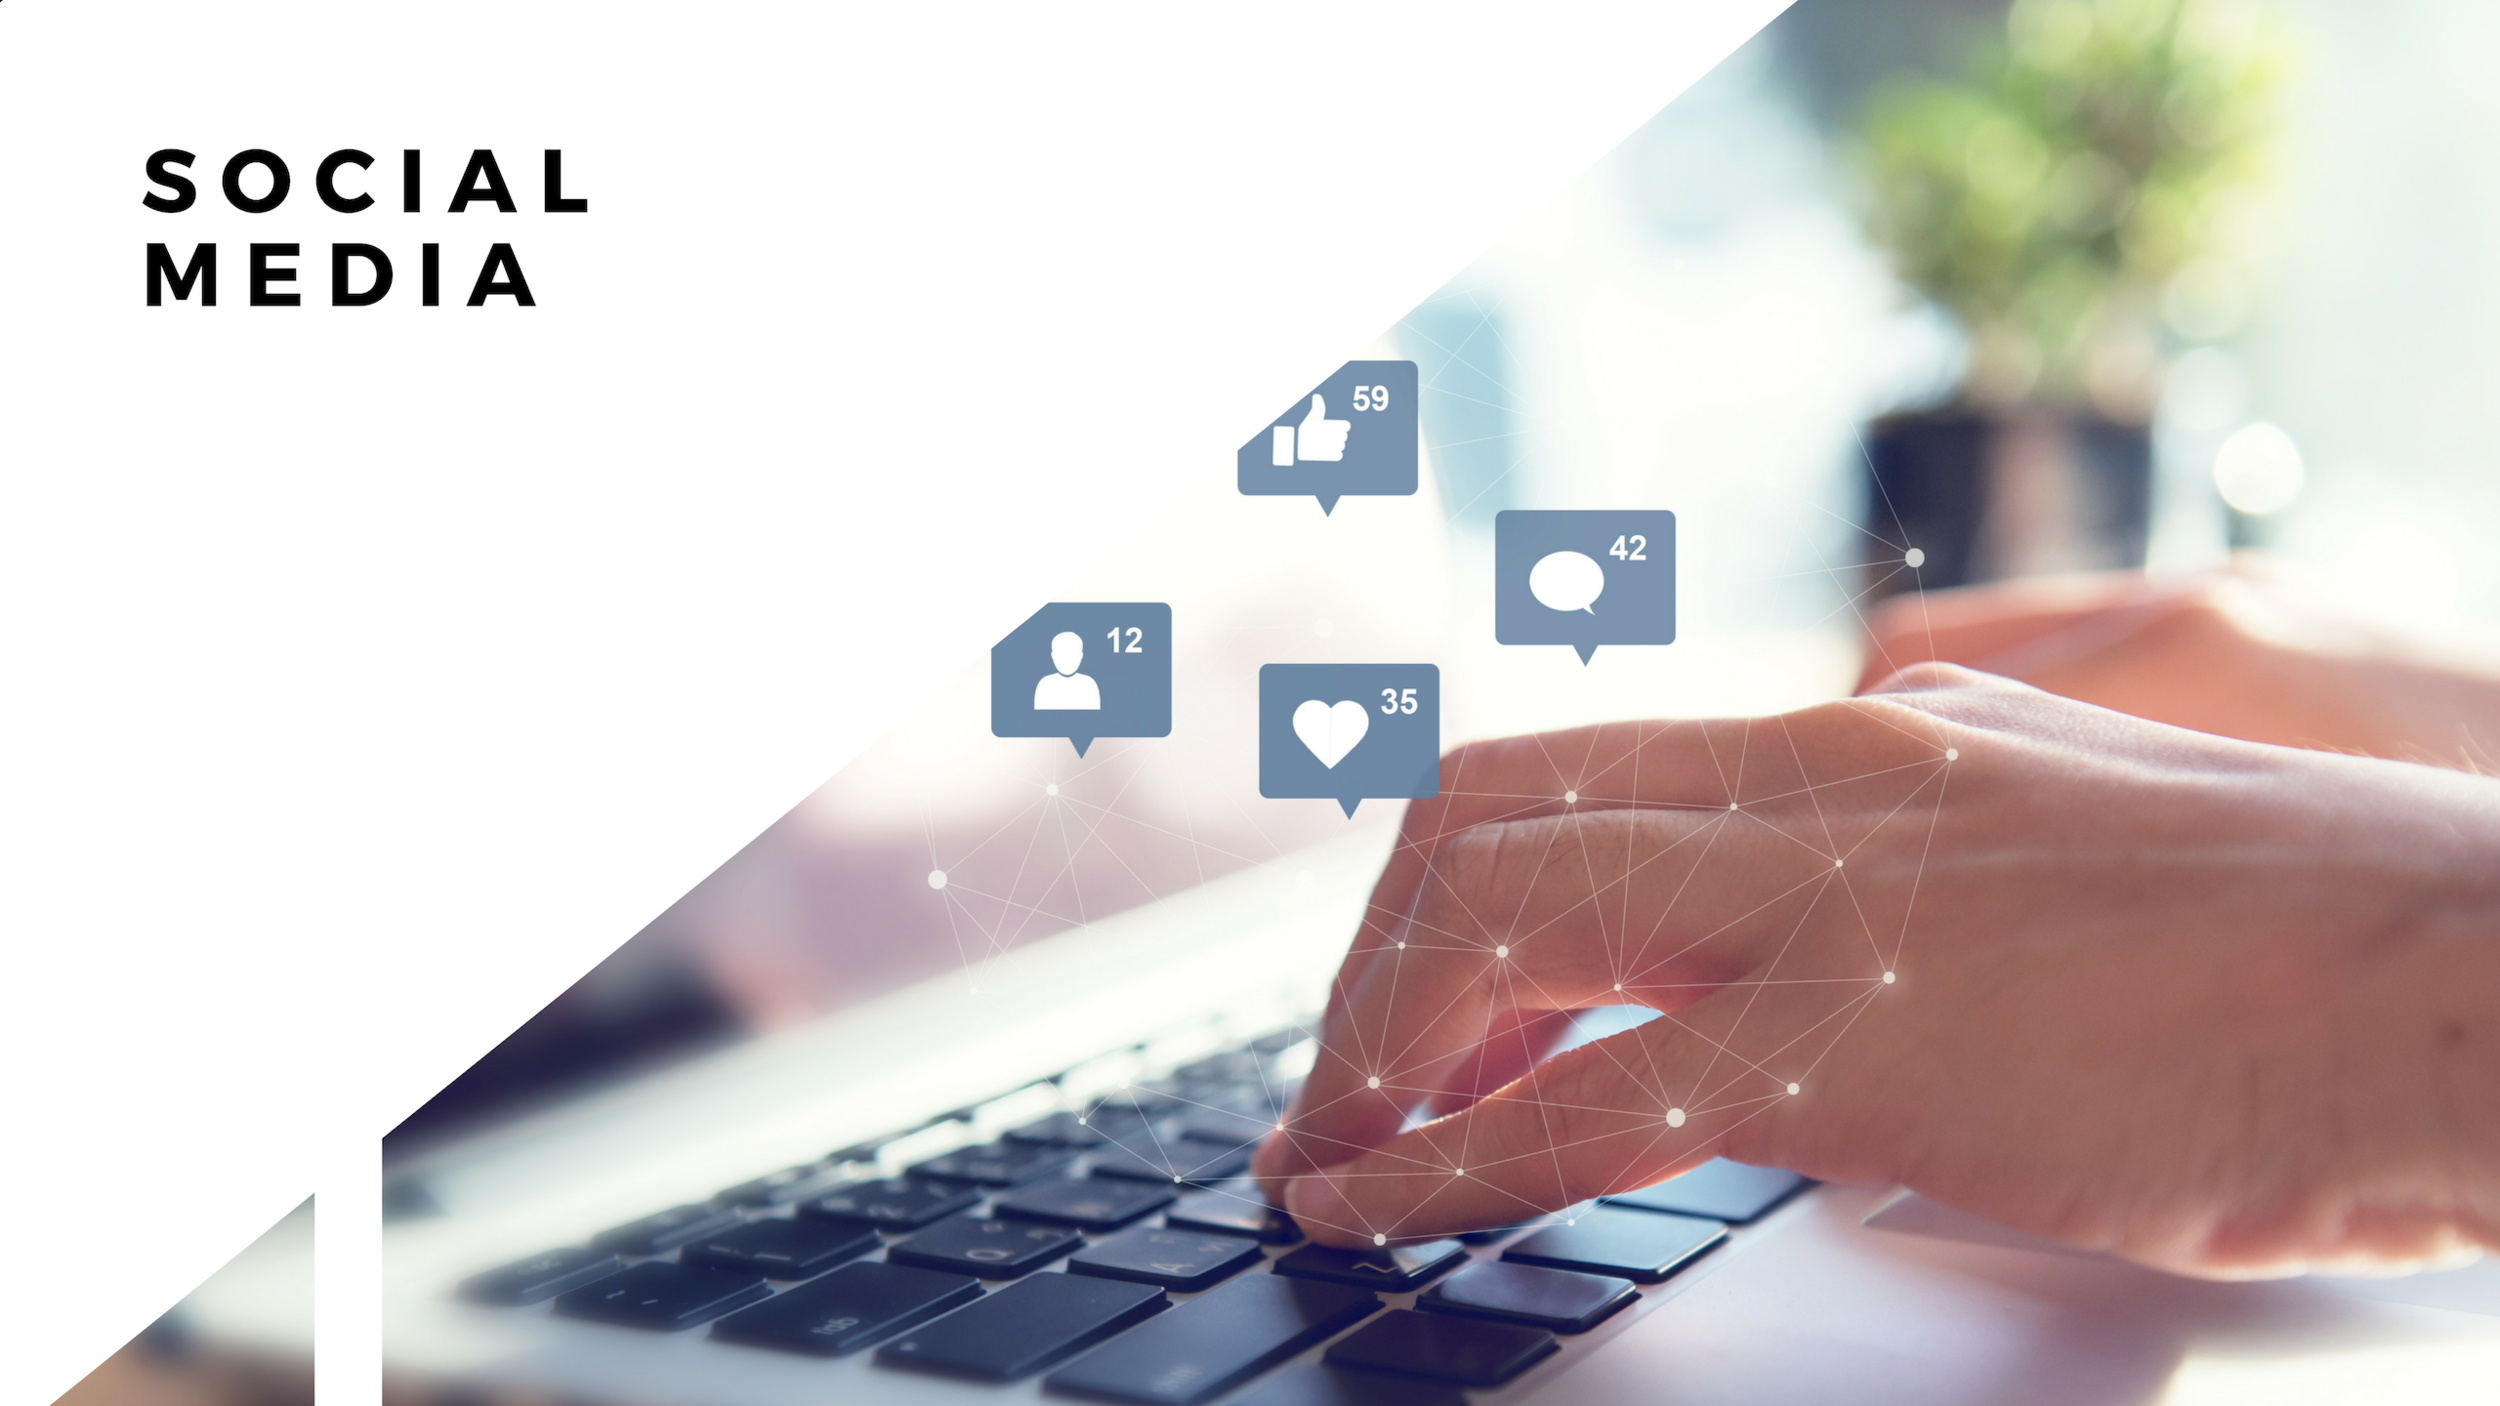 Reach and engage with your audience wherever they are.  We understand the power of social media and know how to turn likes and shares into real action (we're talking ROI folks!)  · Strategy · Content & Community Management · Social creative · Paid · Influencers